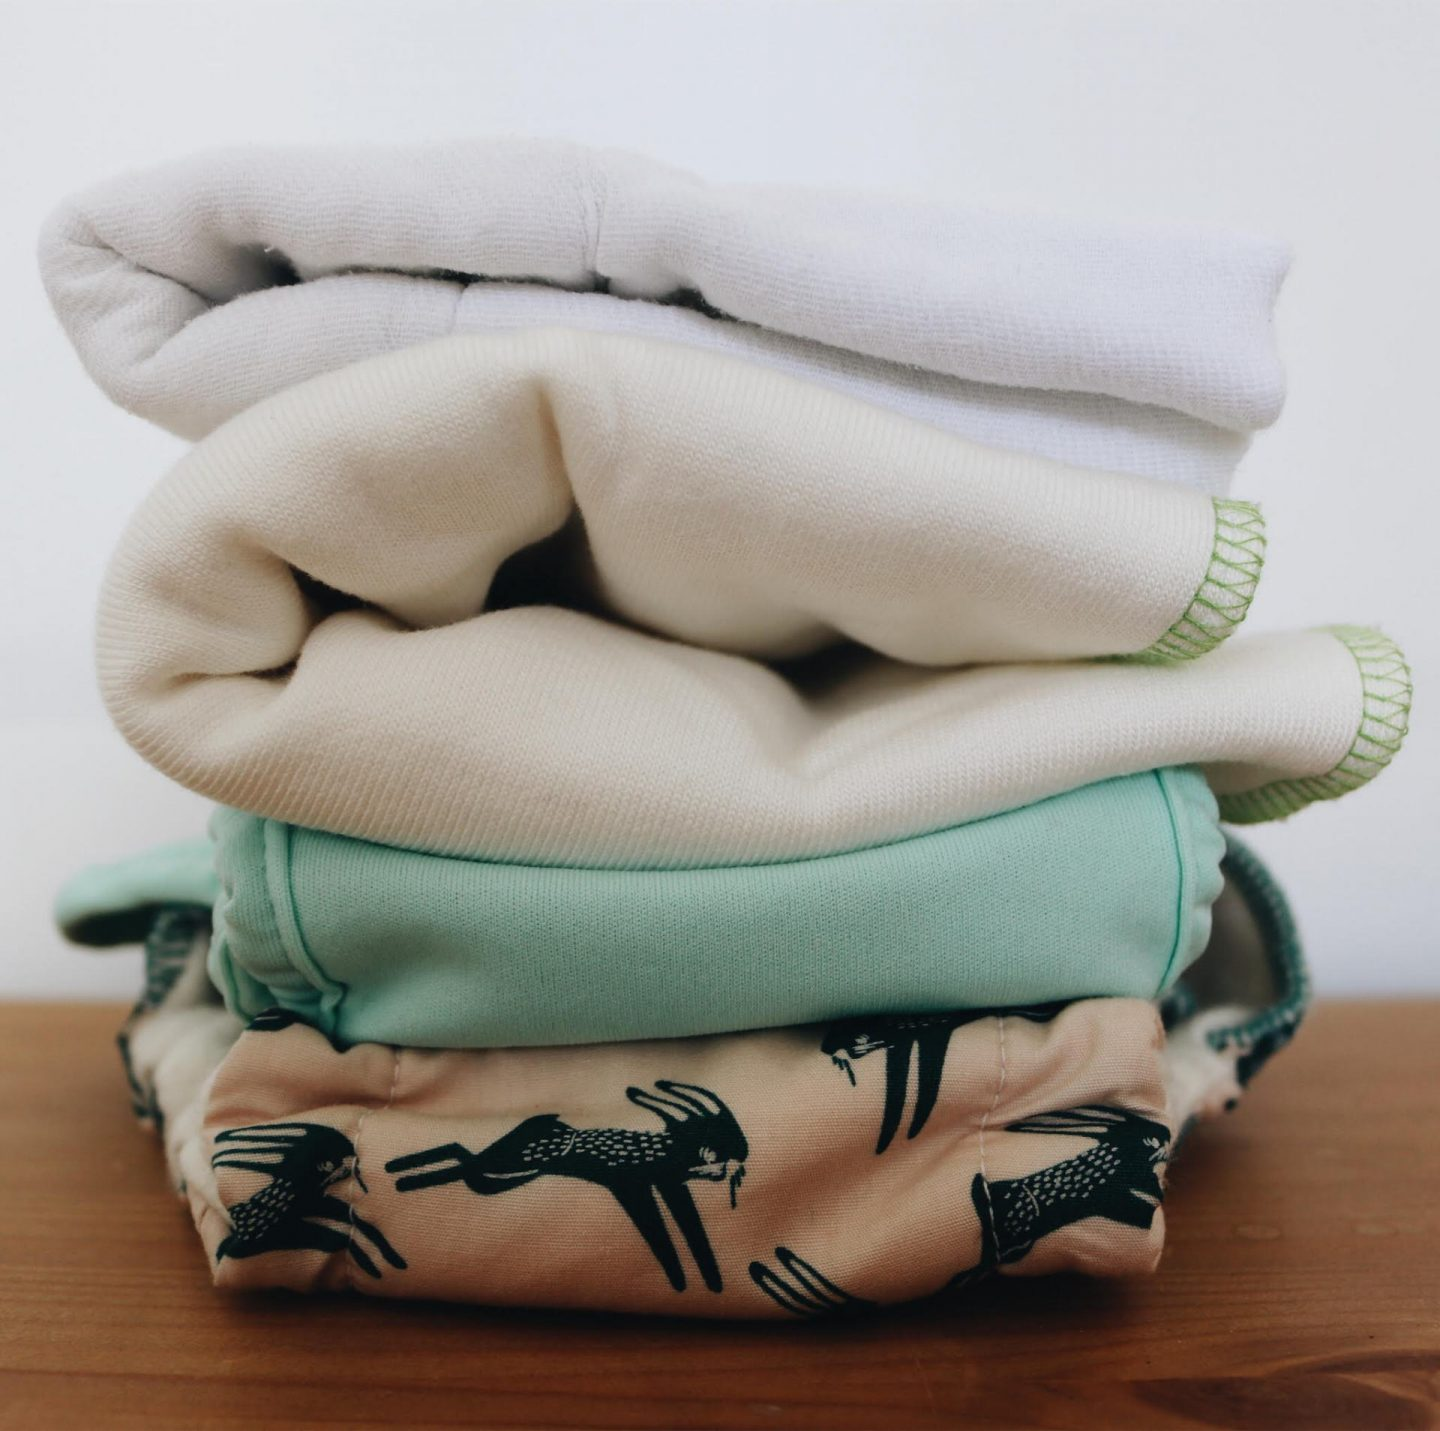 Cloth Nappies for Newborns